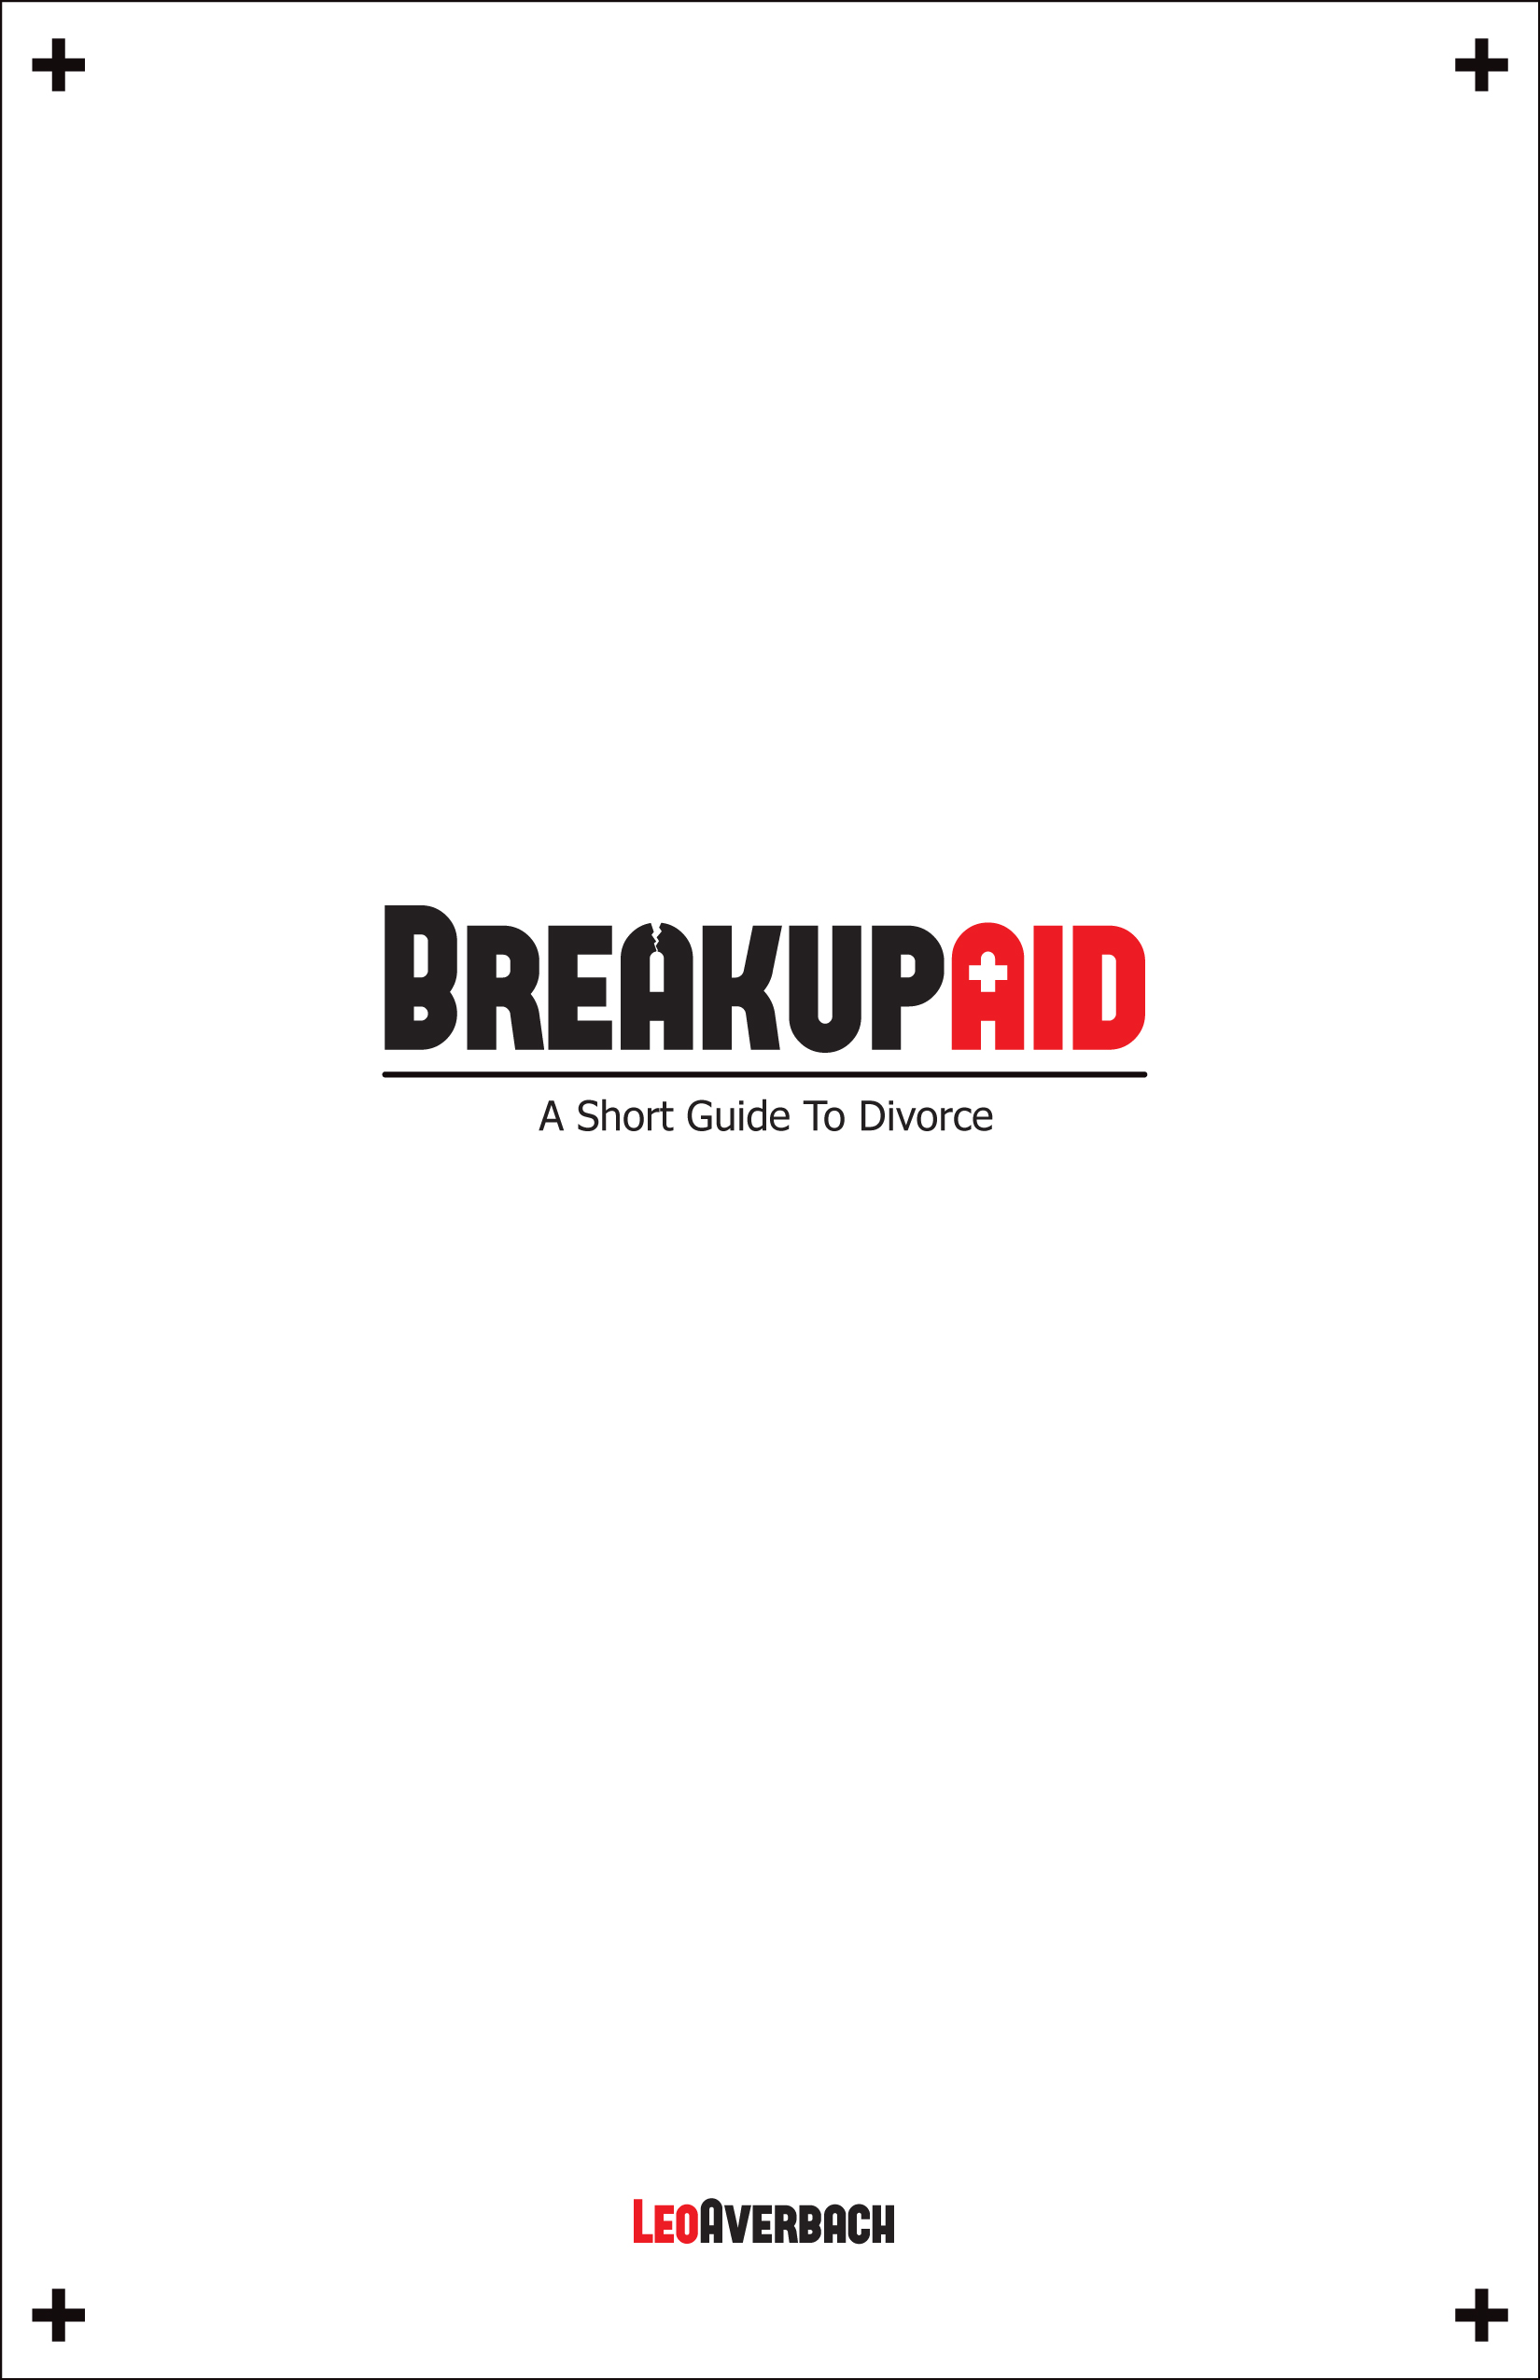 BreakupAid: a Short Guide to Divorce